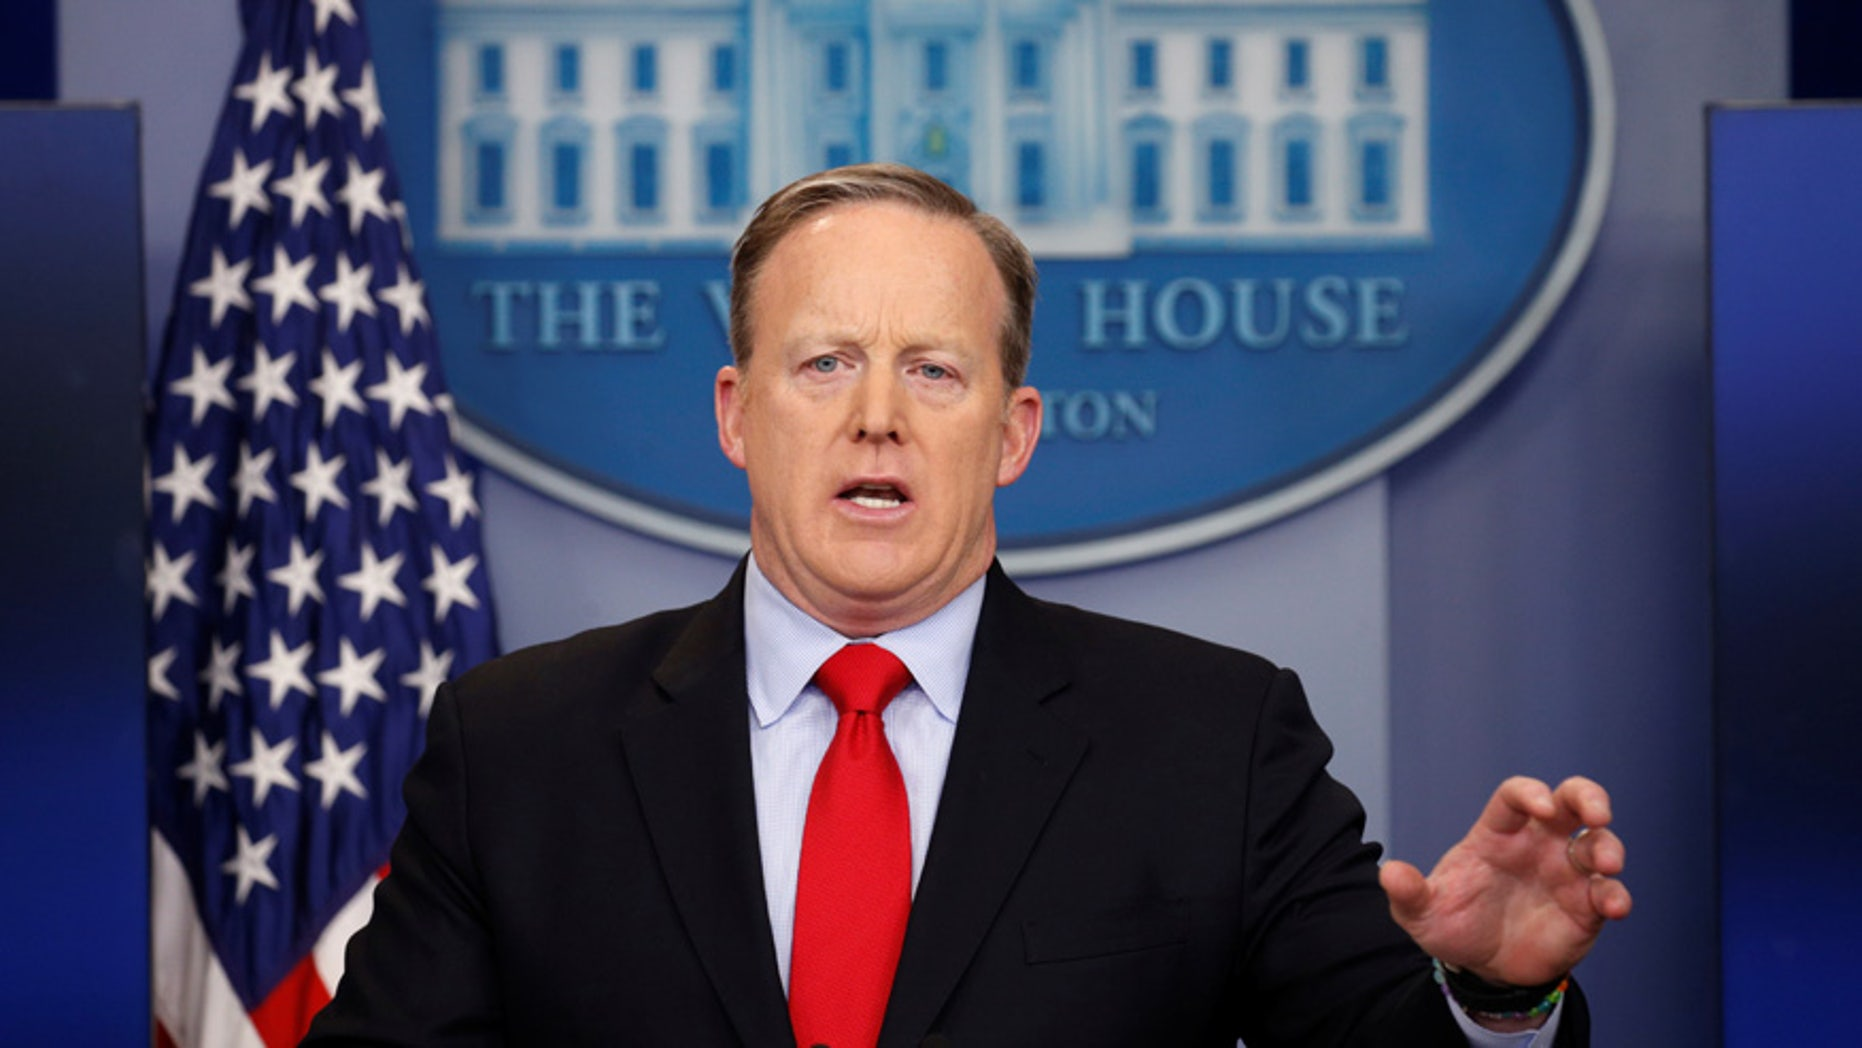 White House spokesman Sean Spicer holds a press briefing at the White House in Washington, U.S., February 3, 2017. (REUTERS/Kevin Lamarque)